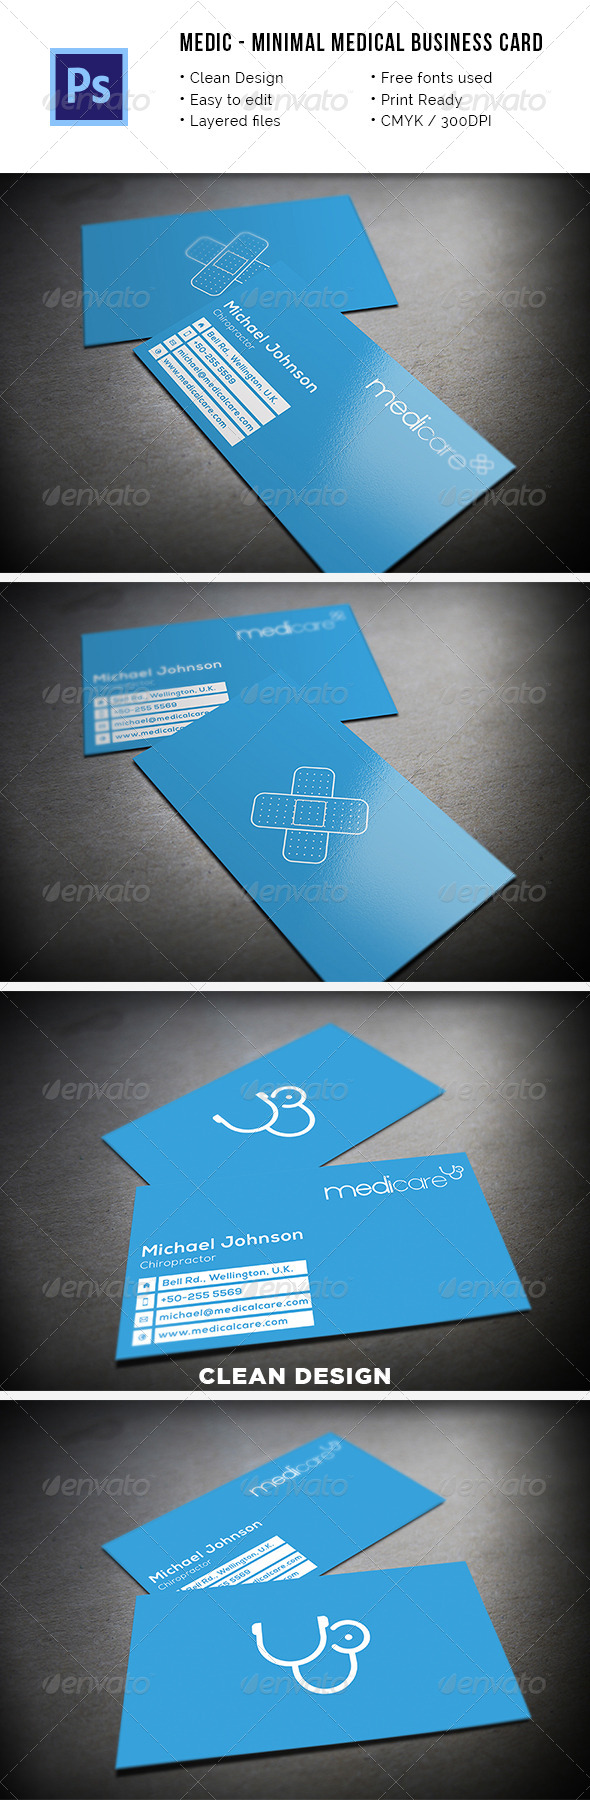 Medic - Minimal Medical Business Card. - Industry Specific Business Cards